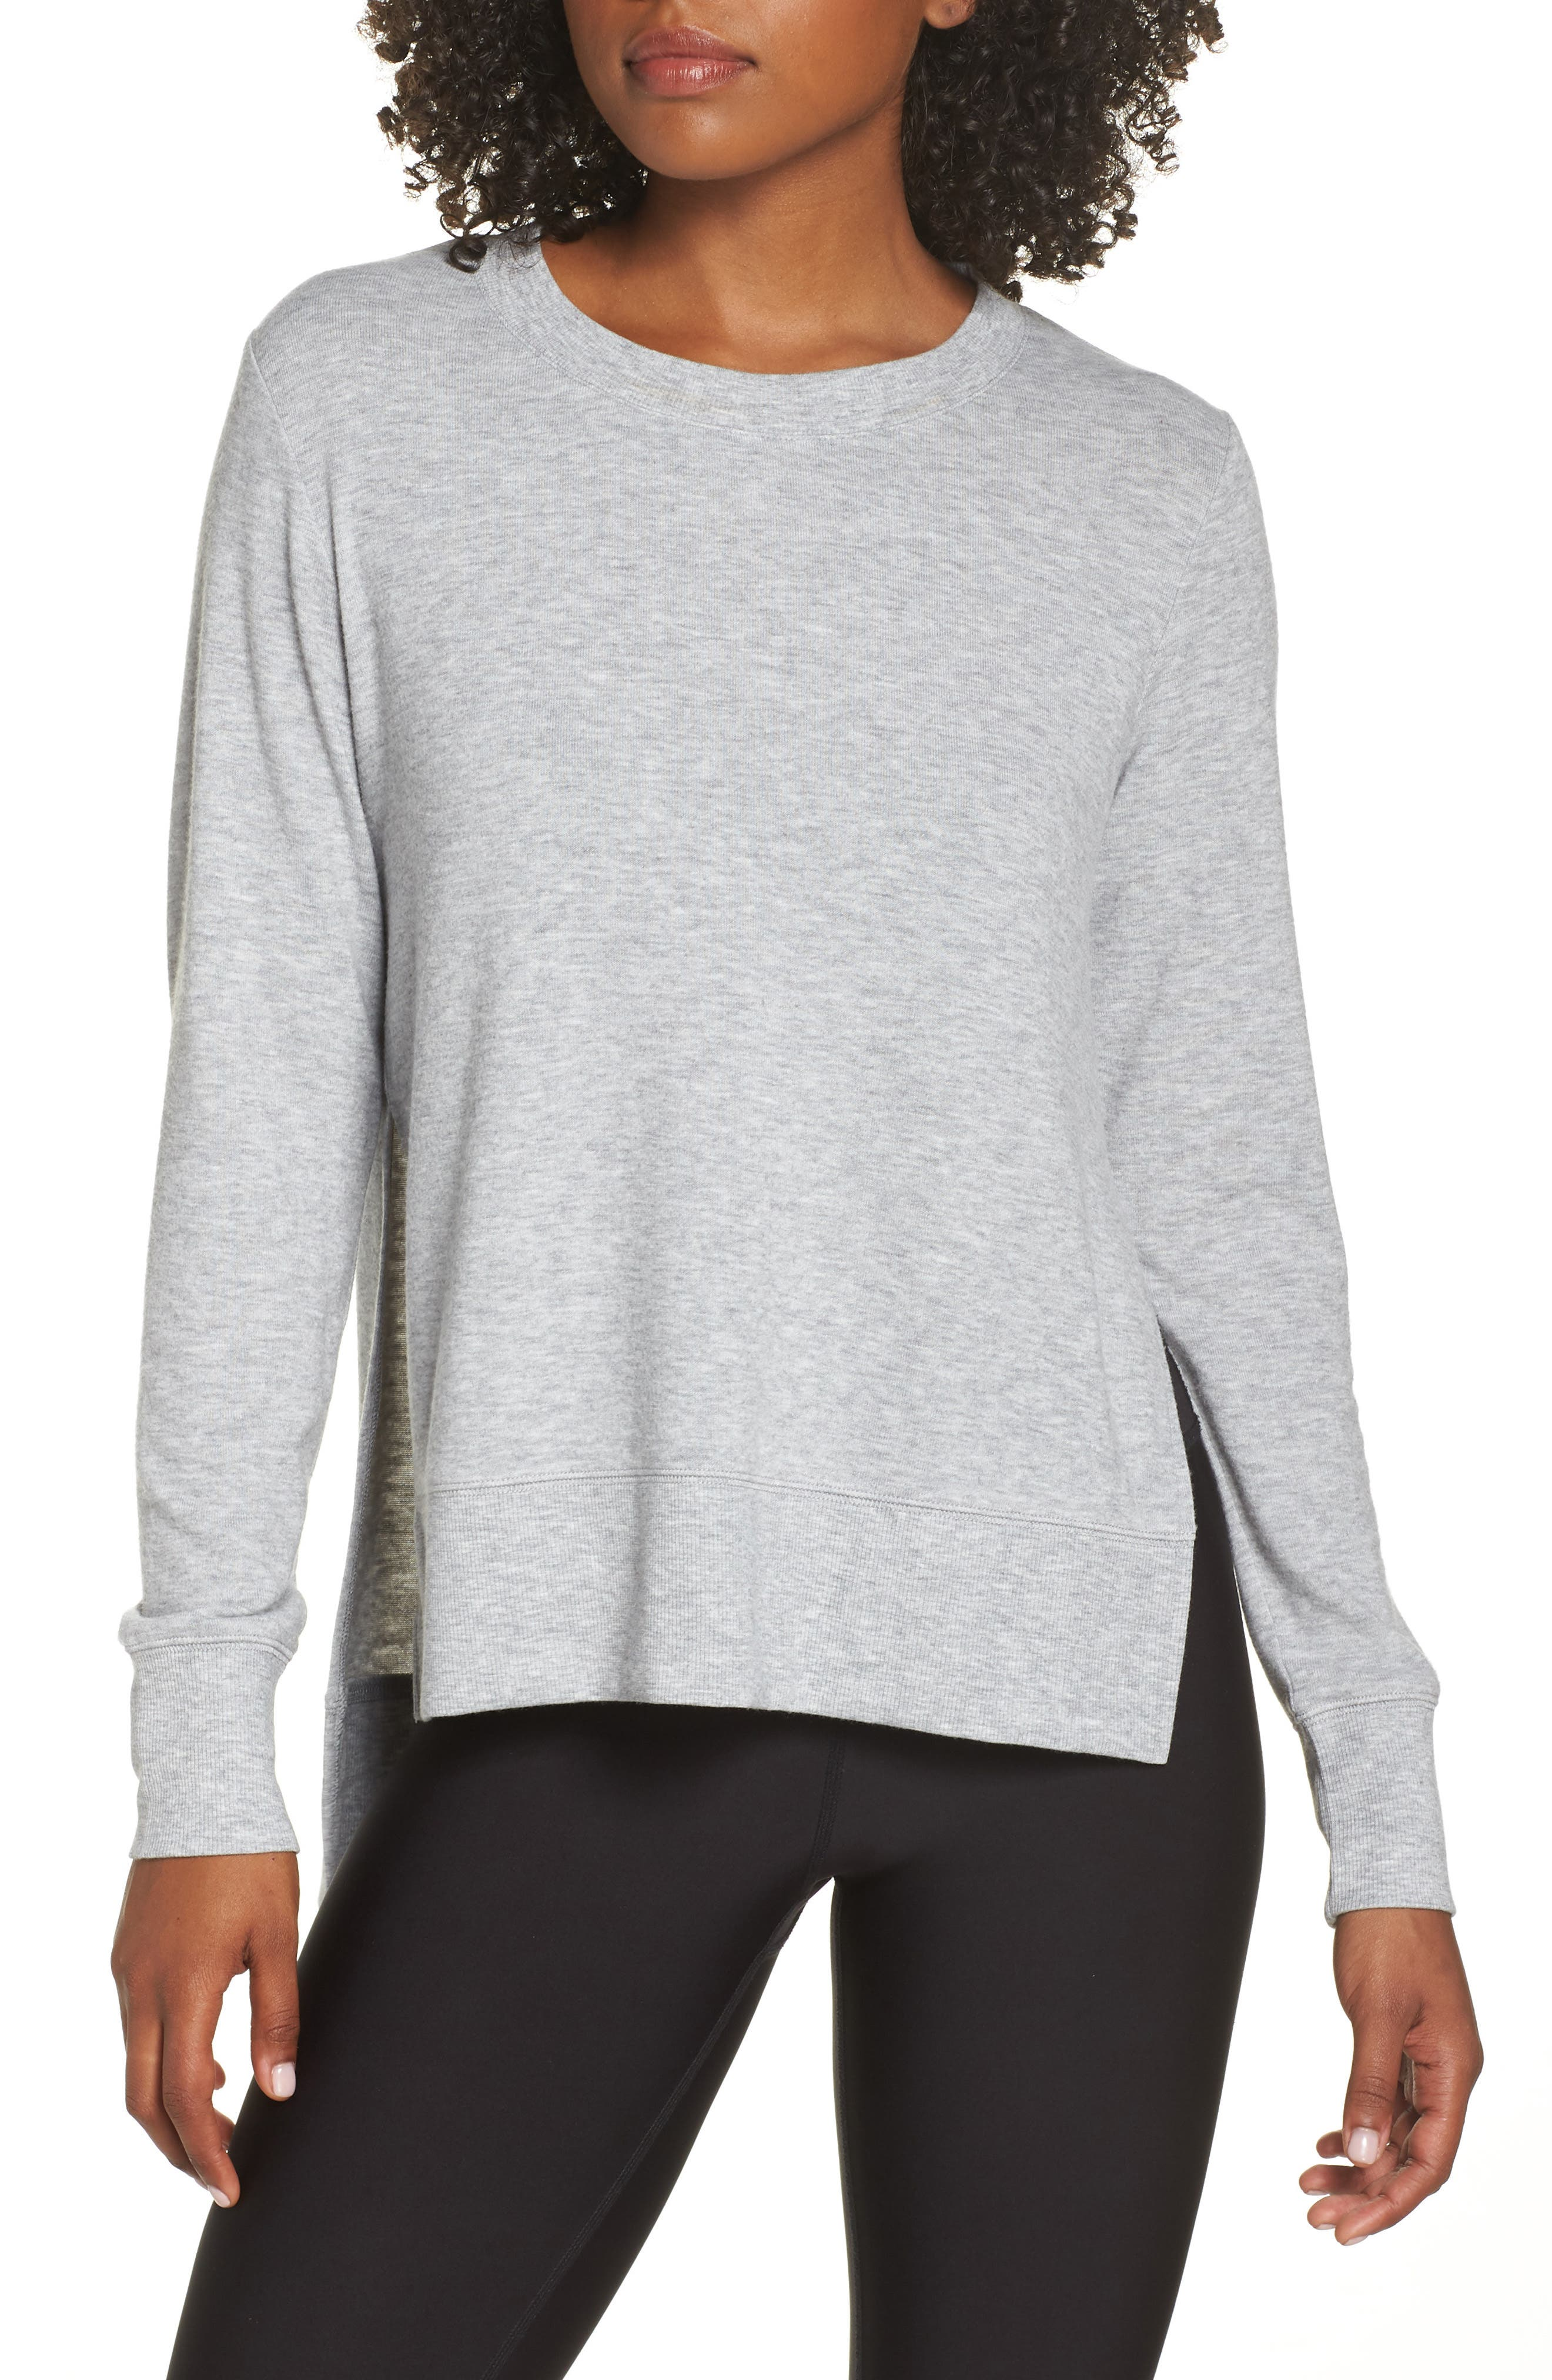 'Glimpse' Long Sleeve Top,                         Main,                         color, DOVE GREY HEATHER